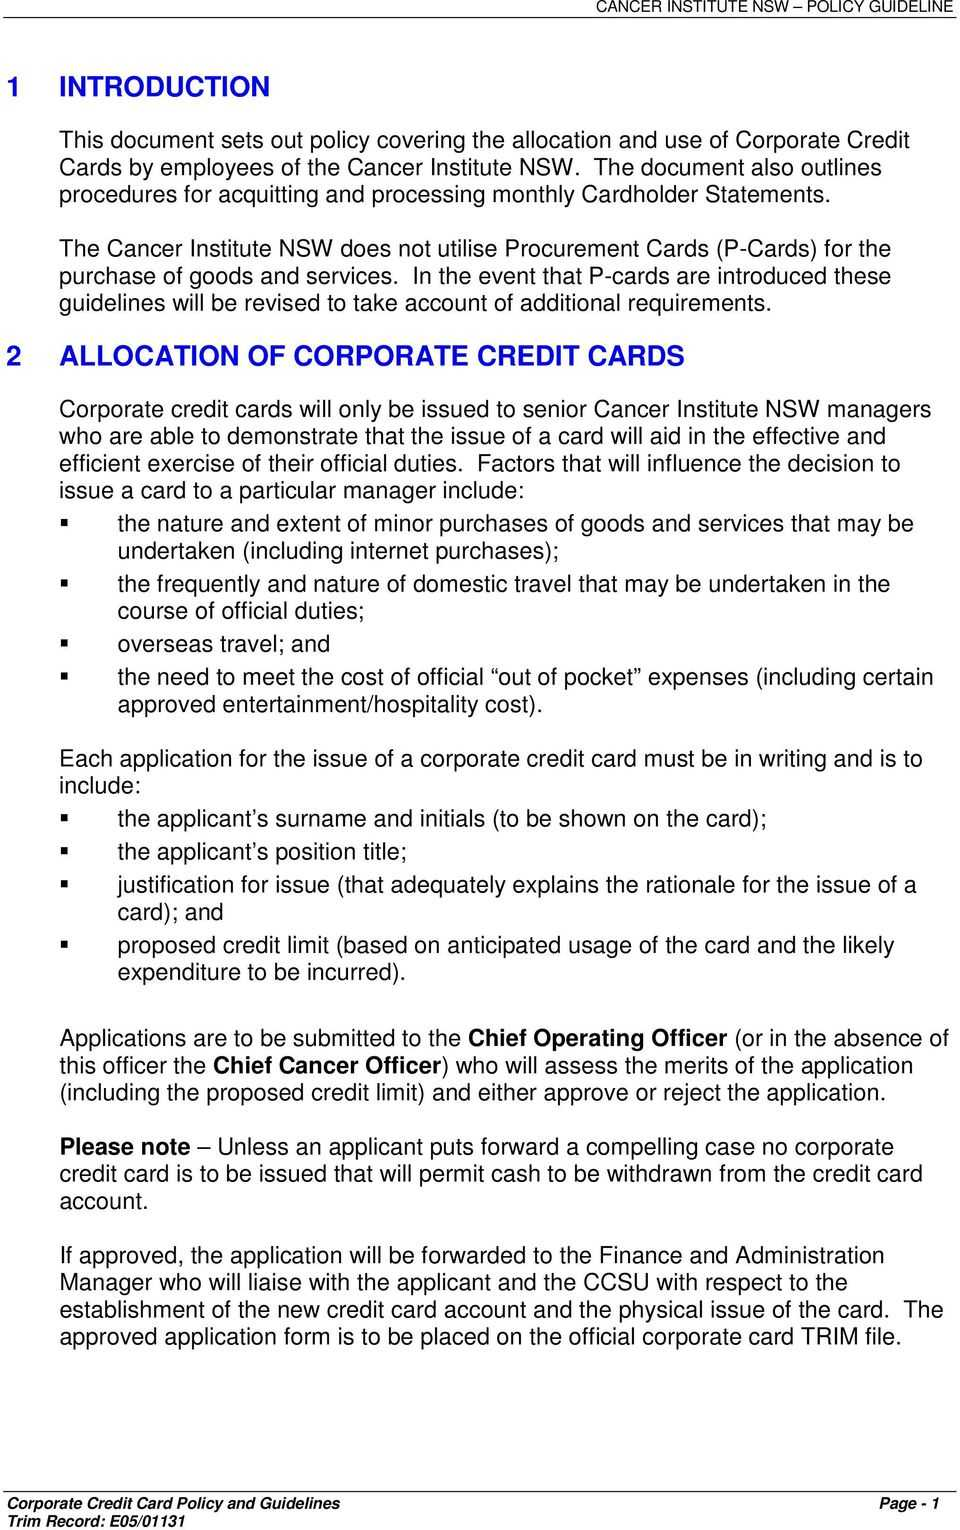 Corporate Credit Card Policy & Guidelines - Pdf Free Download Intended For Company Credit Card Policy Template